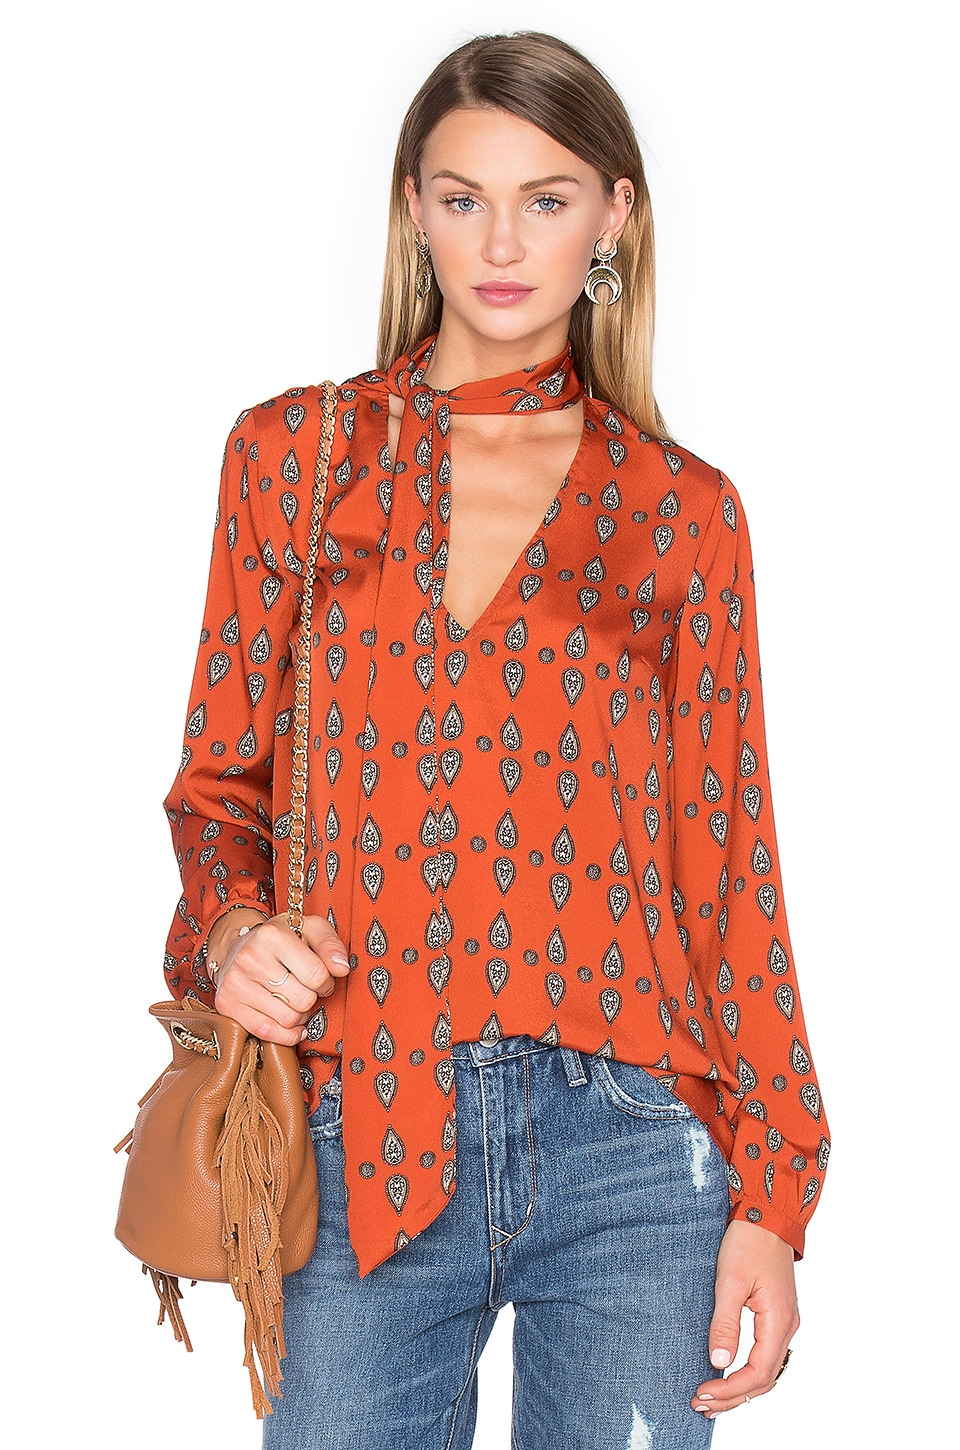 House of Harlow 1960 x REVOLVE Naomi Tie Neck Blouse in Red Orange Paisley